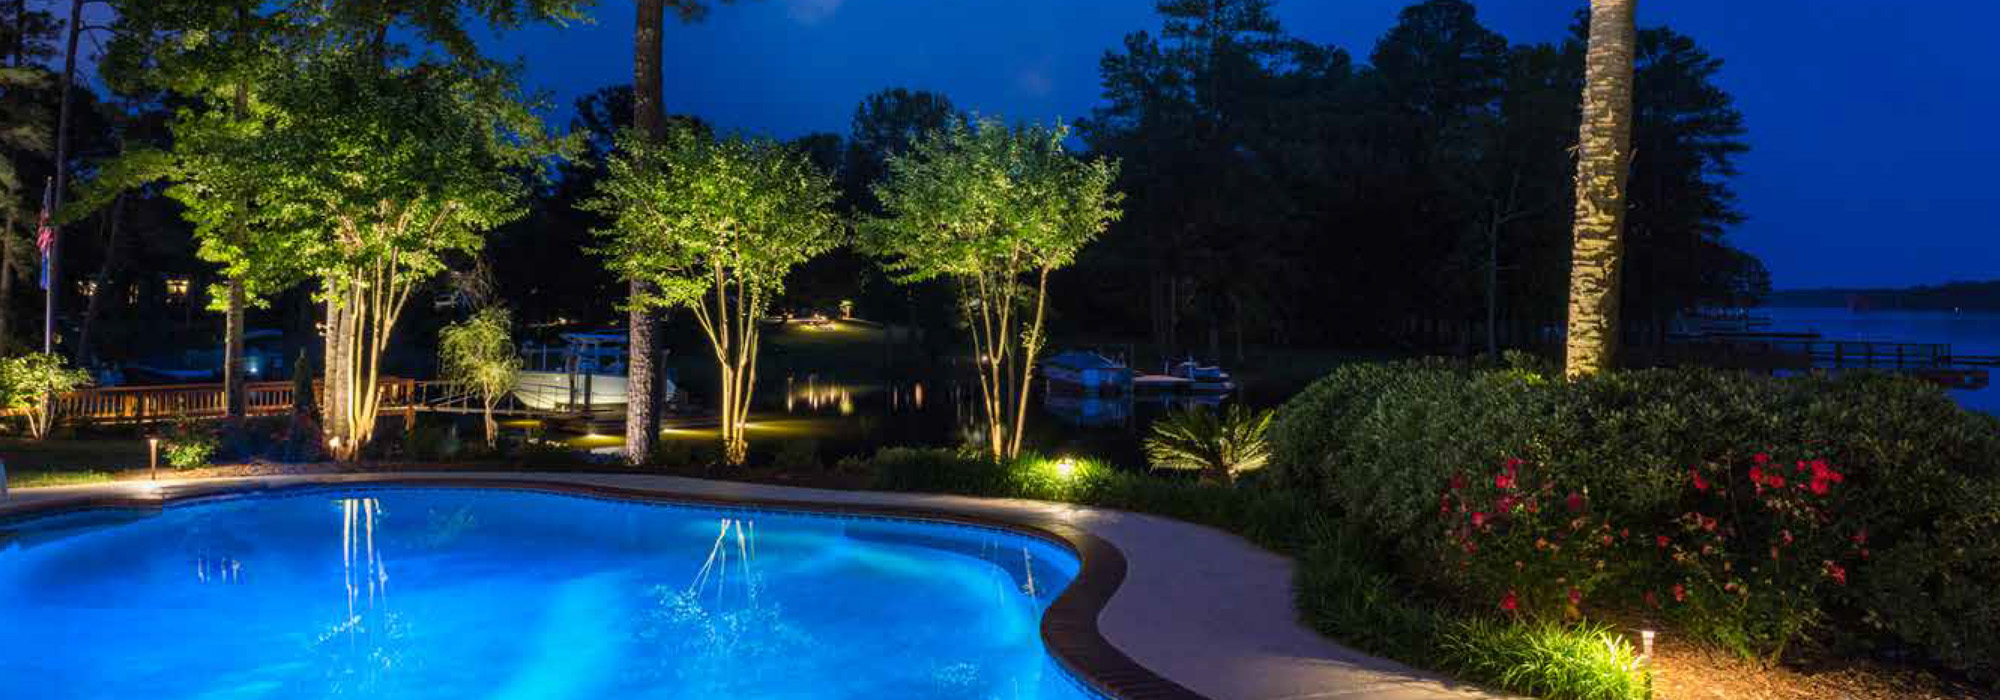 Outdoor lighting perspectives shines during the lighting the installation is where outdoor lighting perspectives shines the most from pools to playgrounds backyard grills to gazebos landscapes to lounge areas aloadofball Gallery